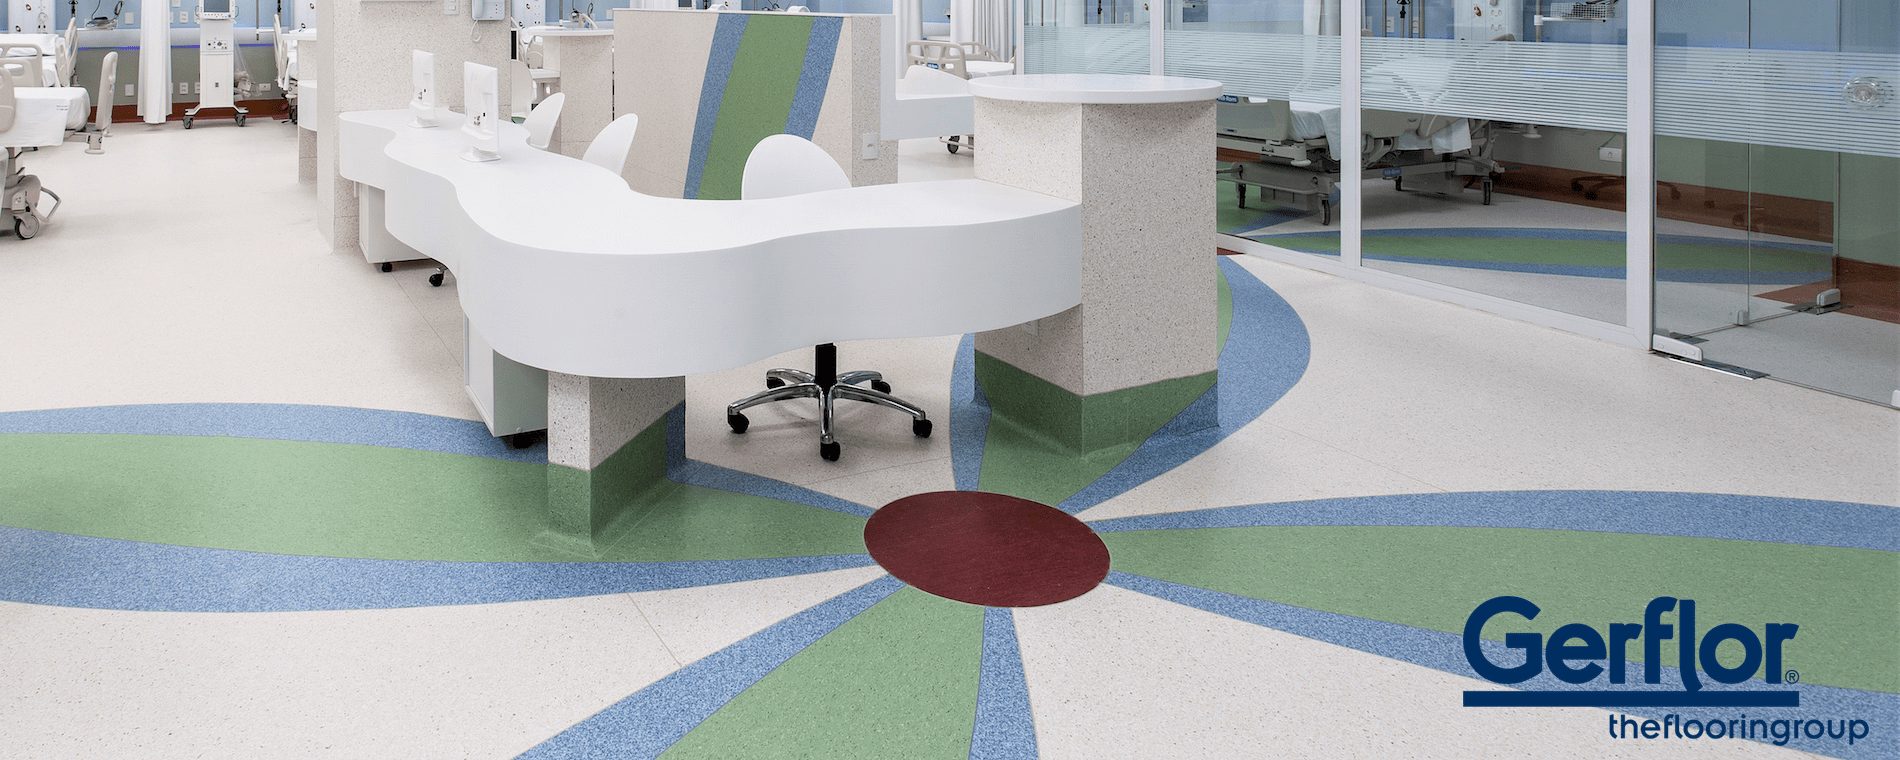 Bryco - Gerflor Medical flooring